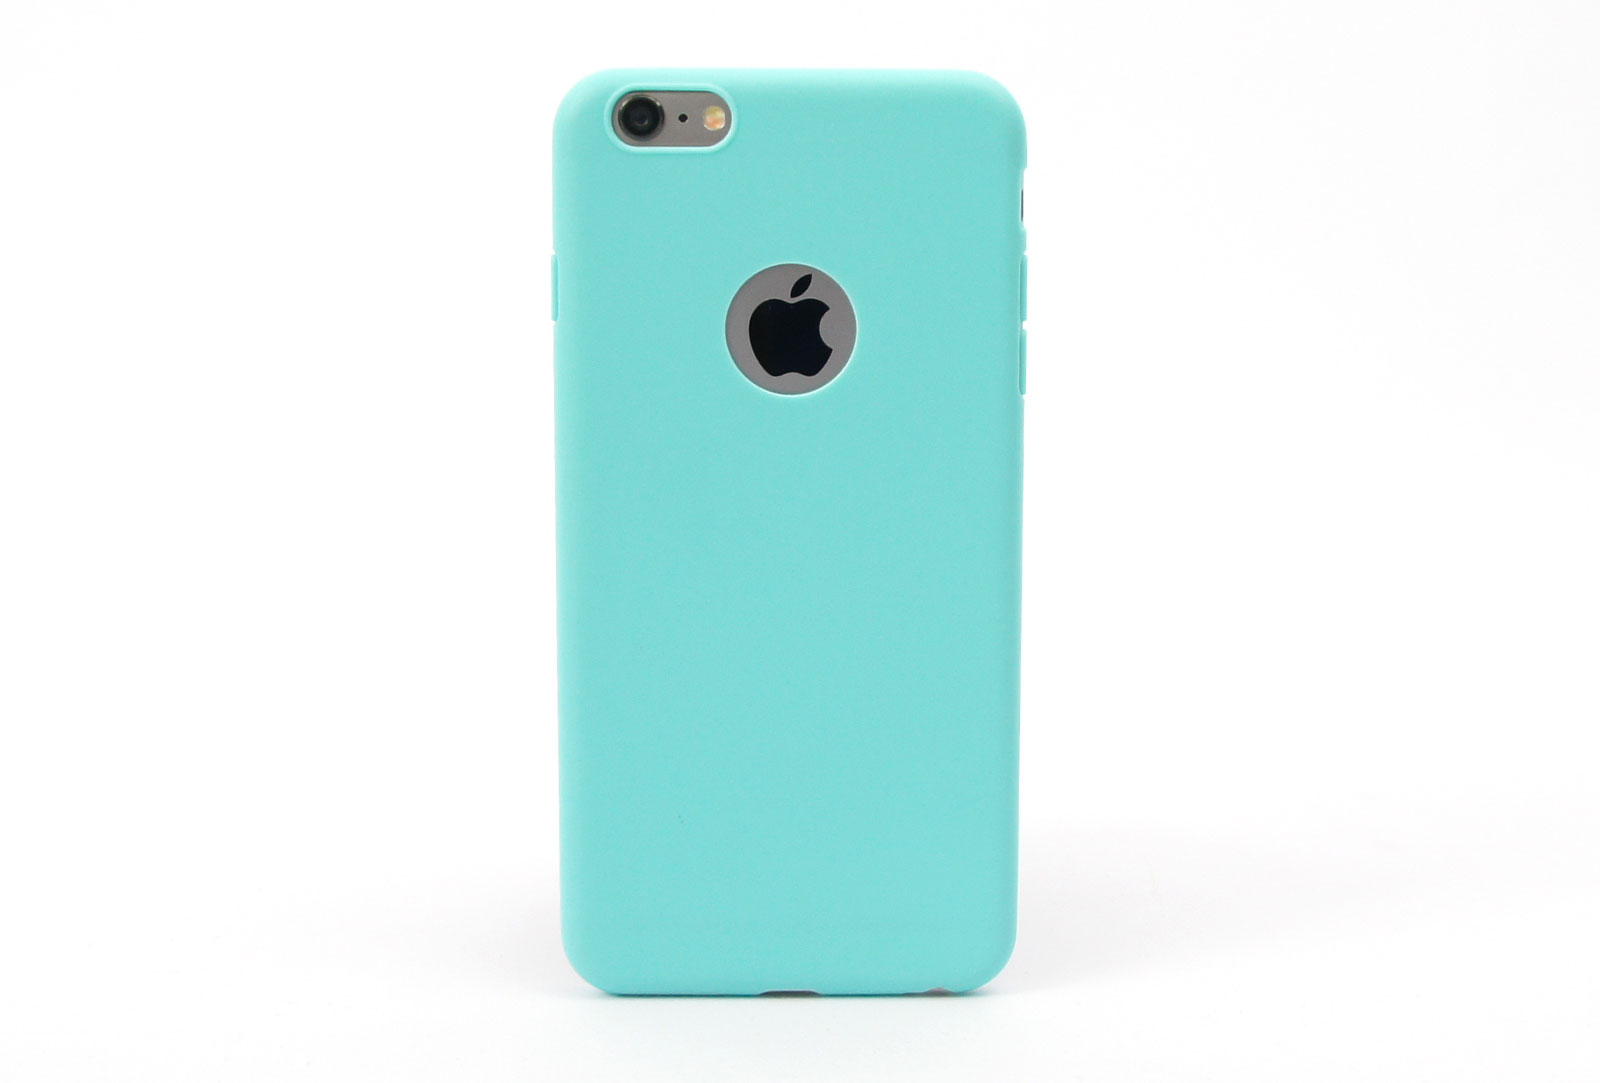 coque silicone souple turquoise pour iphone 6 s plus et iphone 6 plus. Black Bedroom Furniture Sets. Home Design Ideas